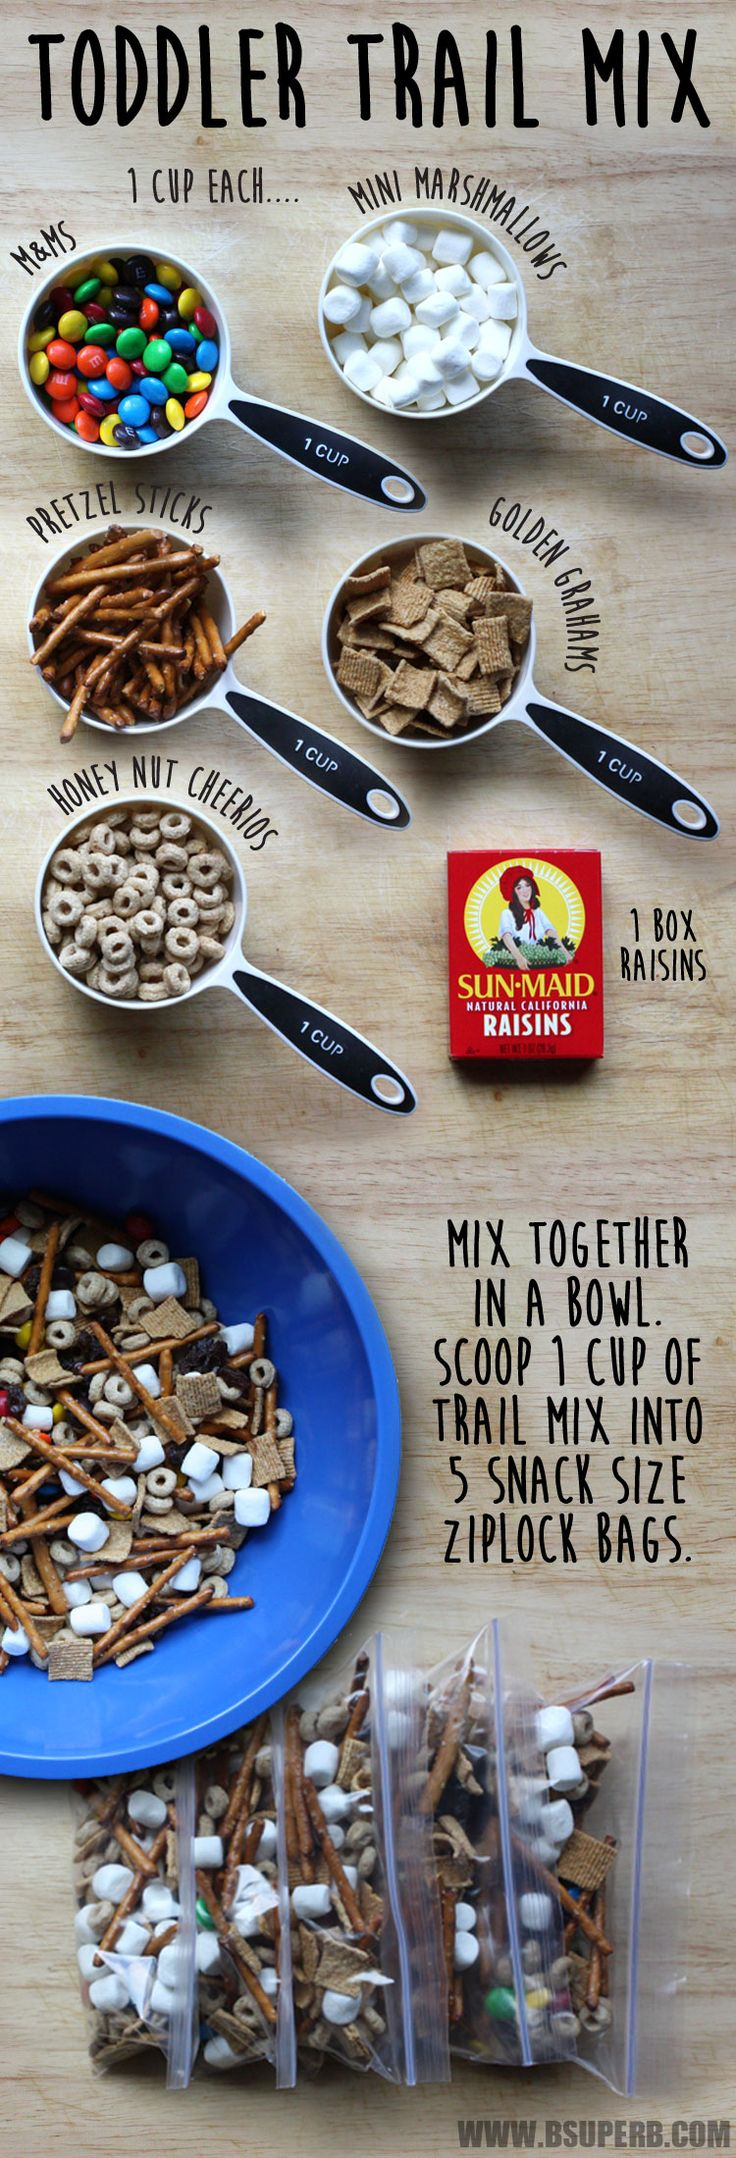 Toddler Trail Mix - quick and easy recipe that your kiddos will love Without marshmallows or m&ms